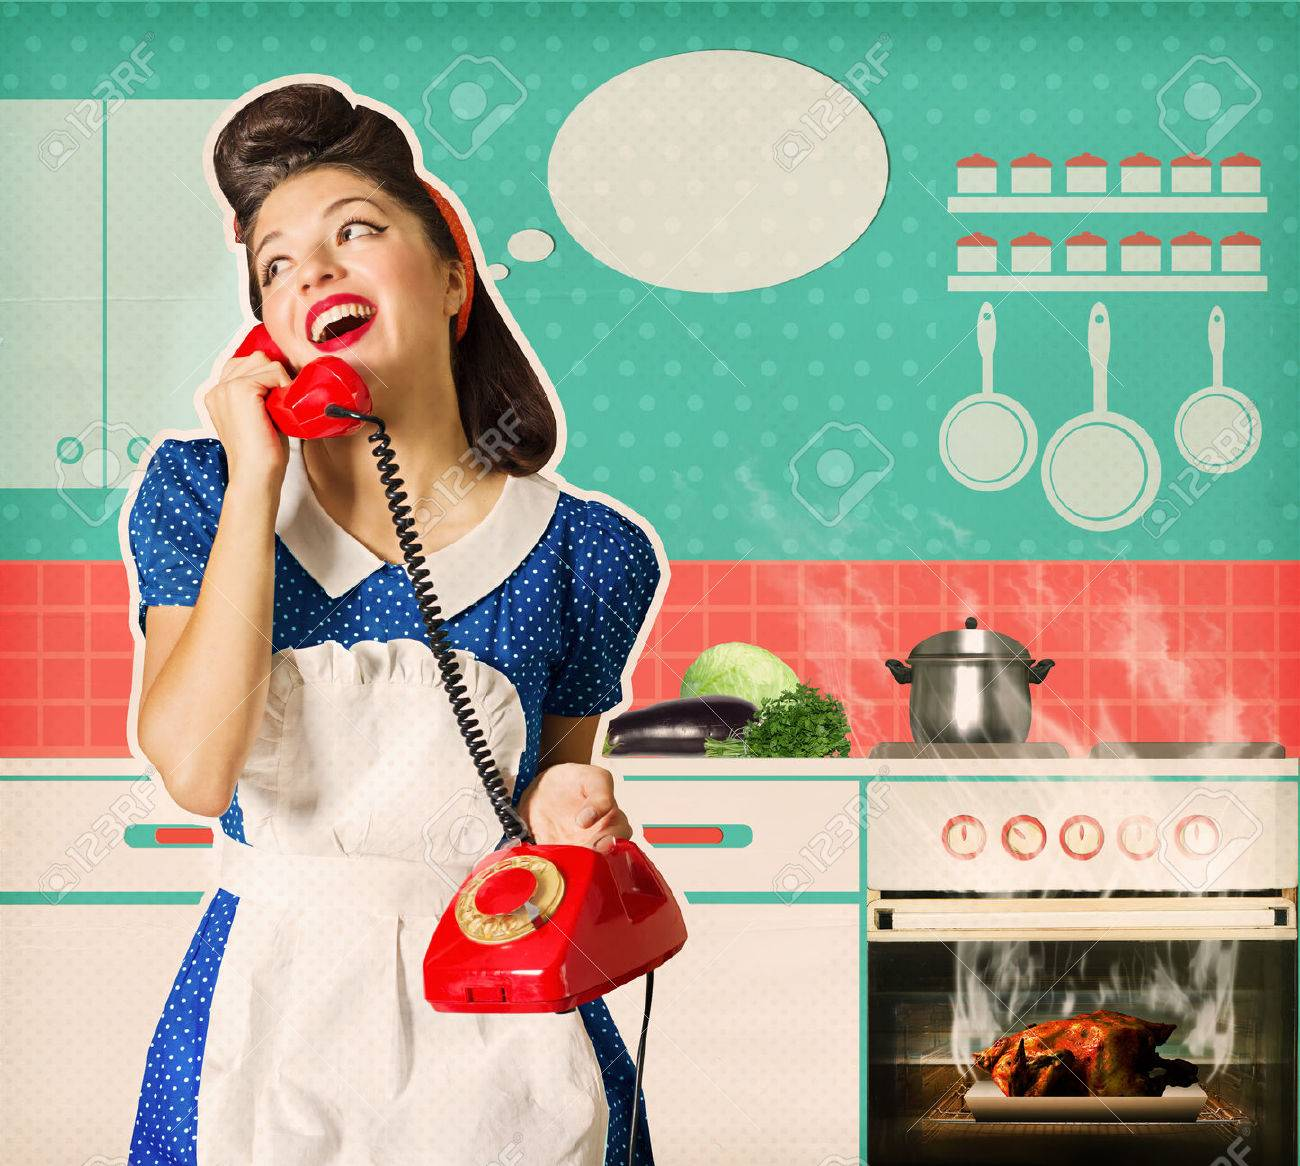 Retro Woman Kitchen Stock Photos. Royalty Free Retro Woman Kitchen ...